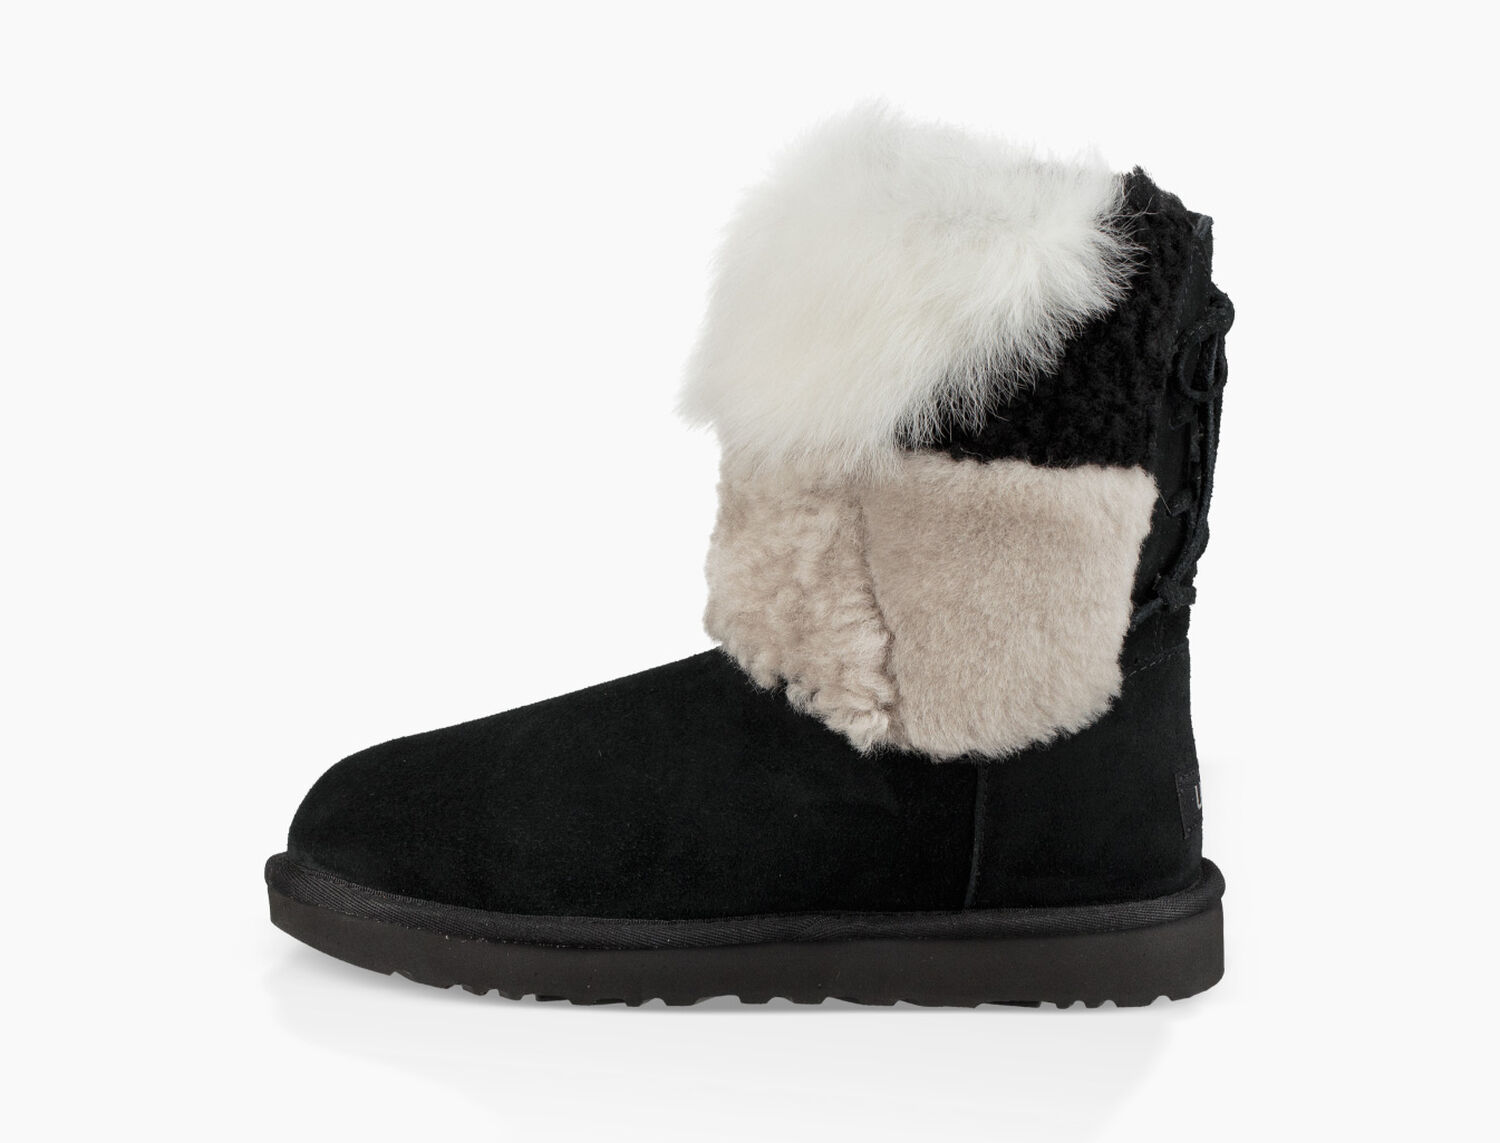 6e92be3e997 Women's Share this product Classic Short Patchwork Fluff Boot